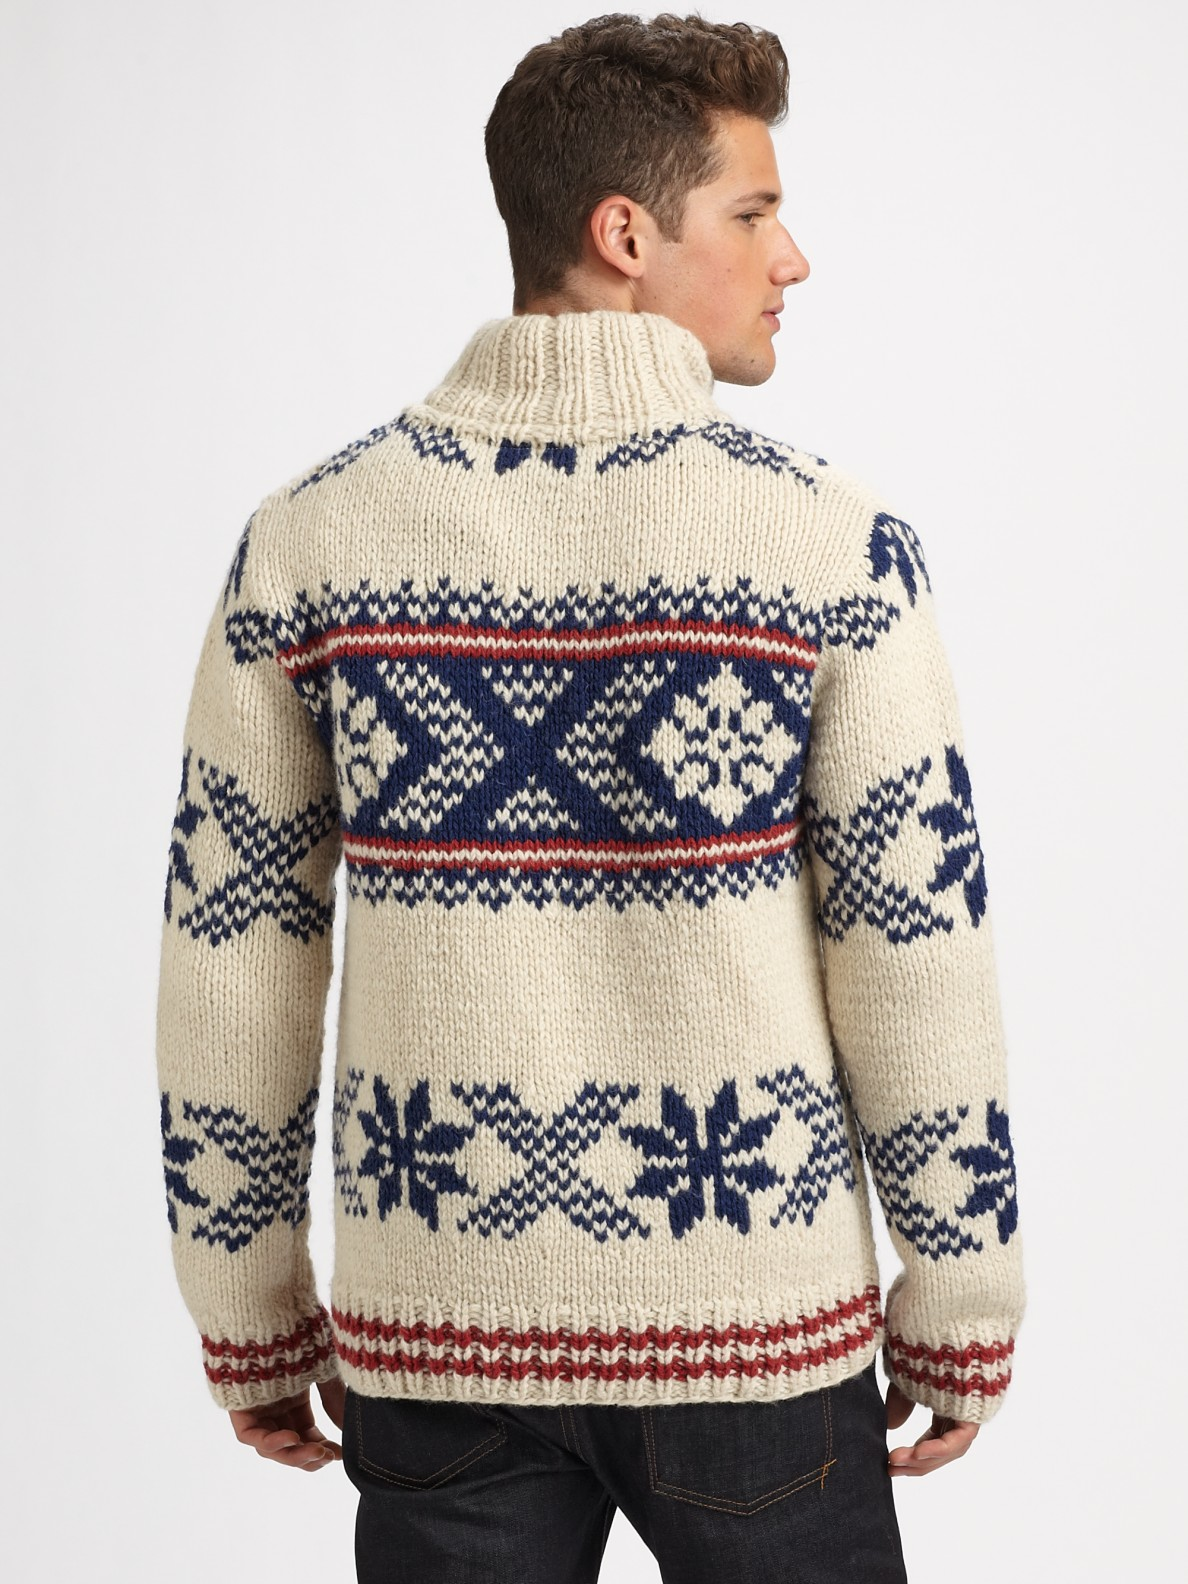 Hand Knitting Designs Sweaters For Men : Lyst scotch soda hand knit wool sweater in white for men